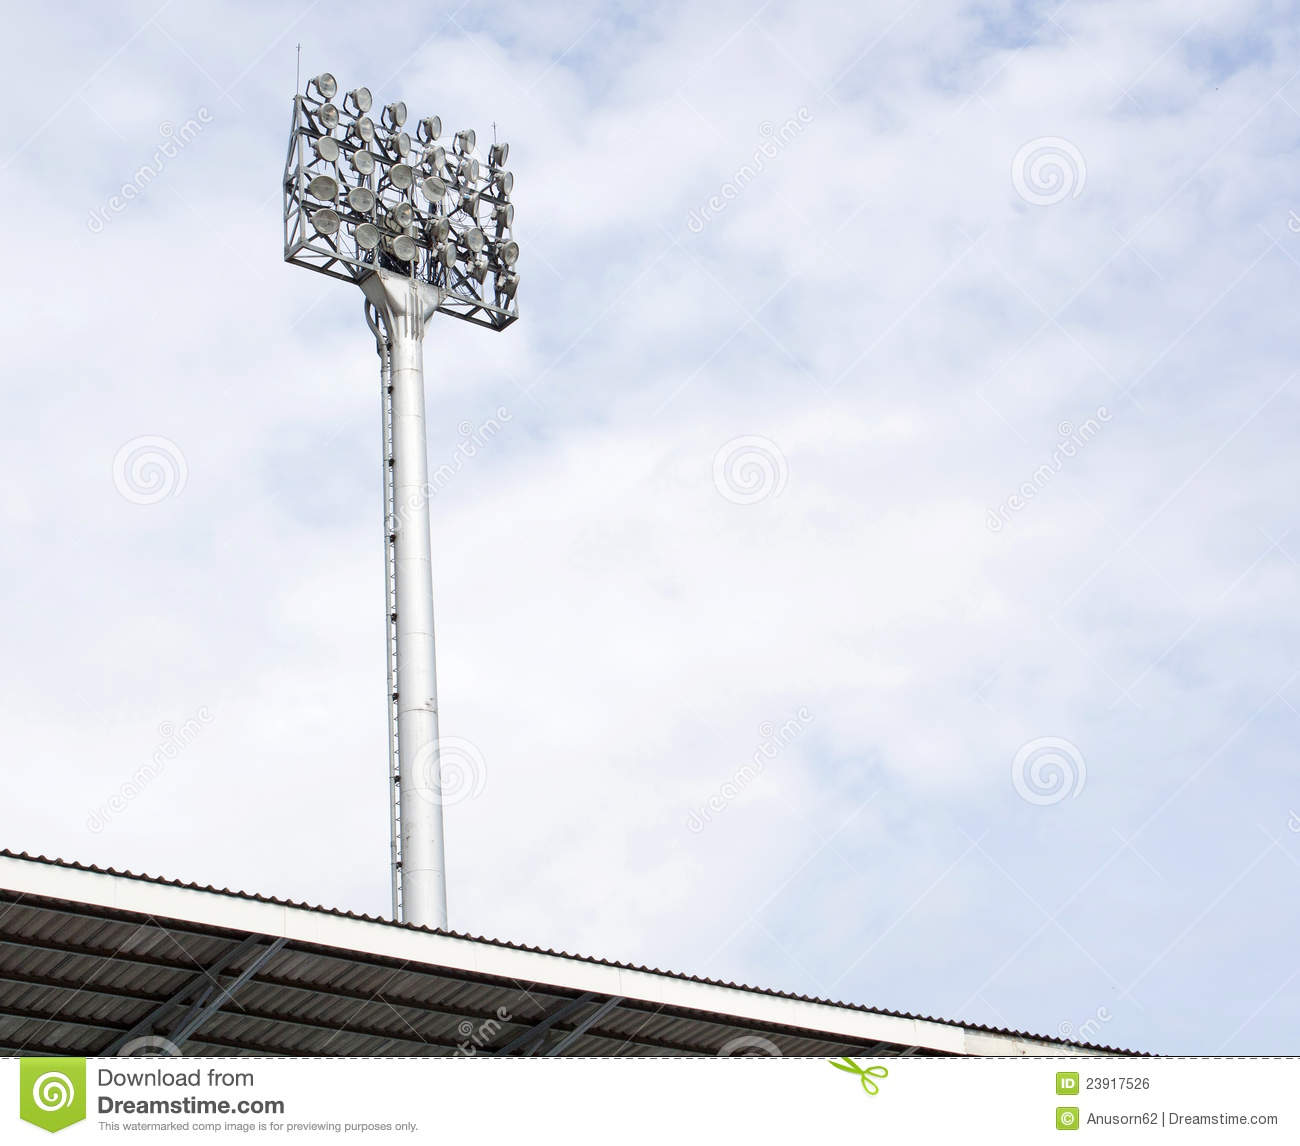 Stadium Floodlight Pole : A football stadium floodlight royalty free stock image